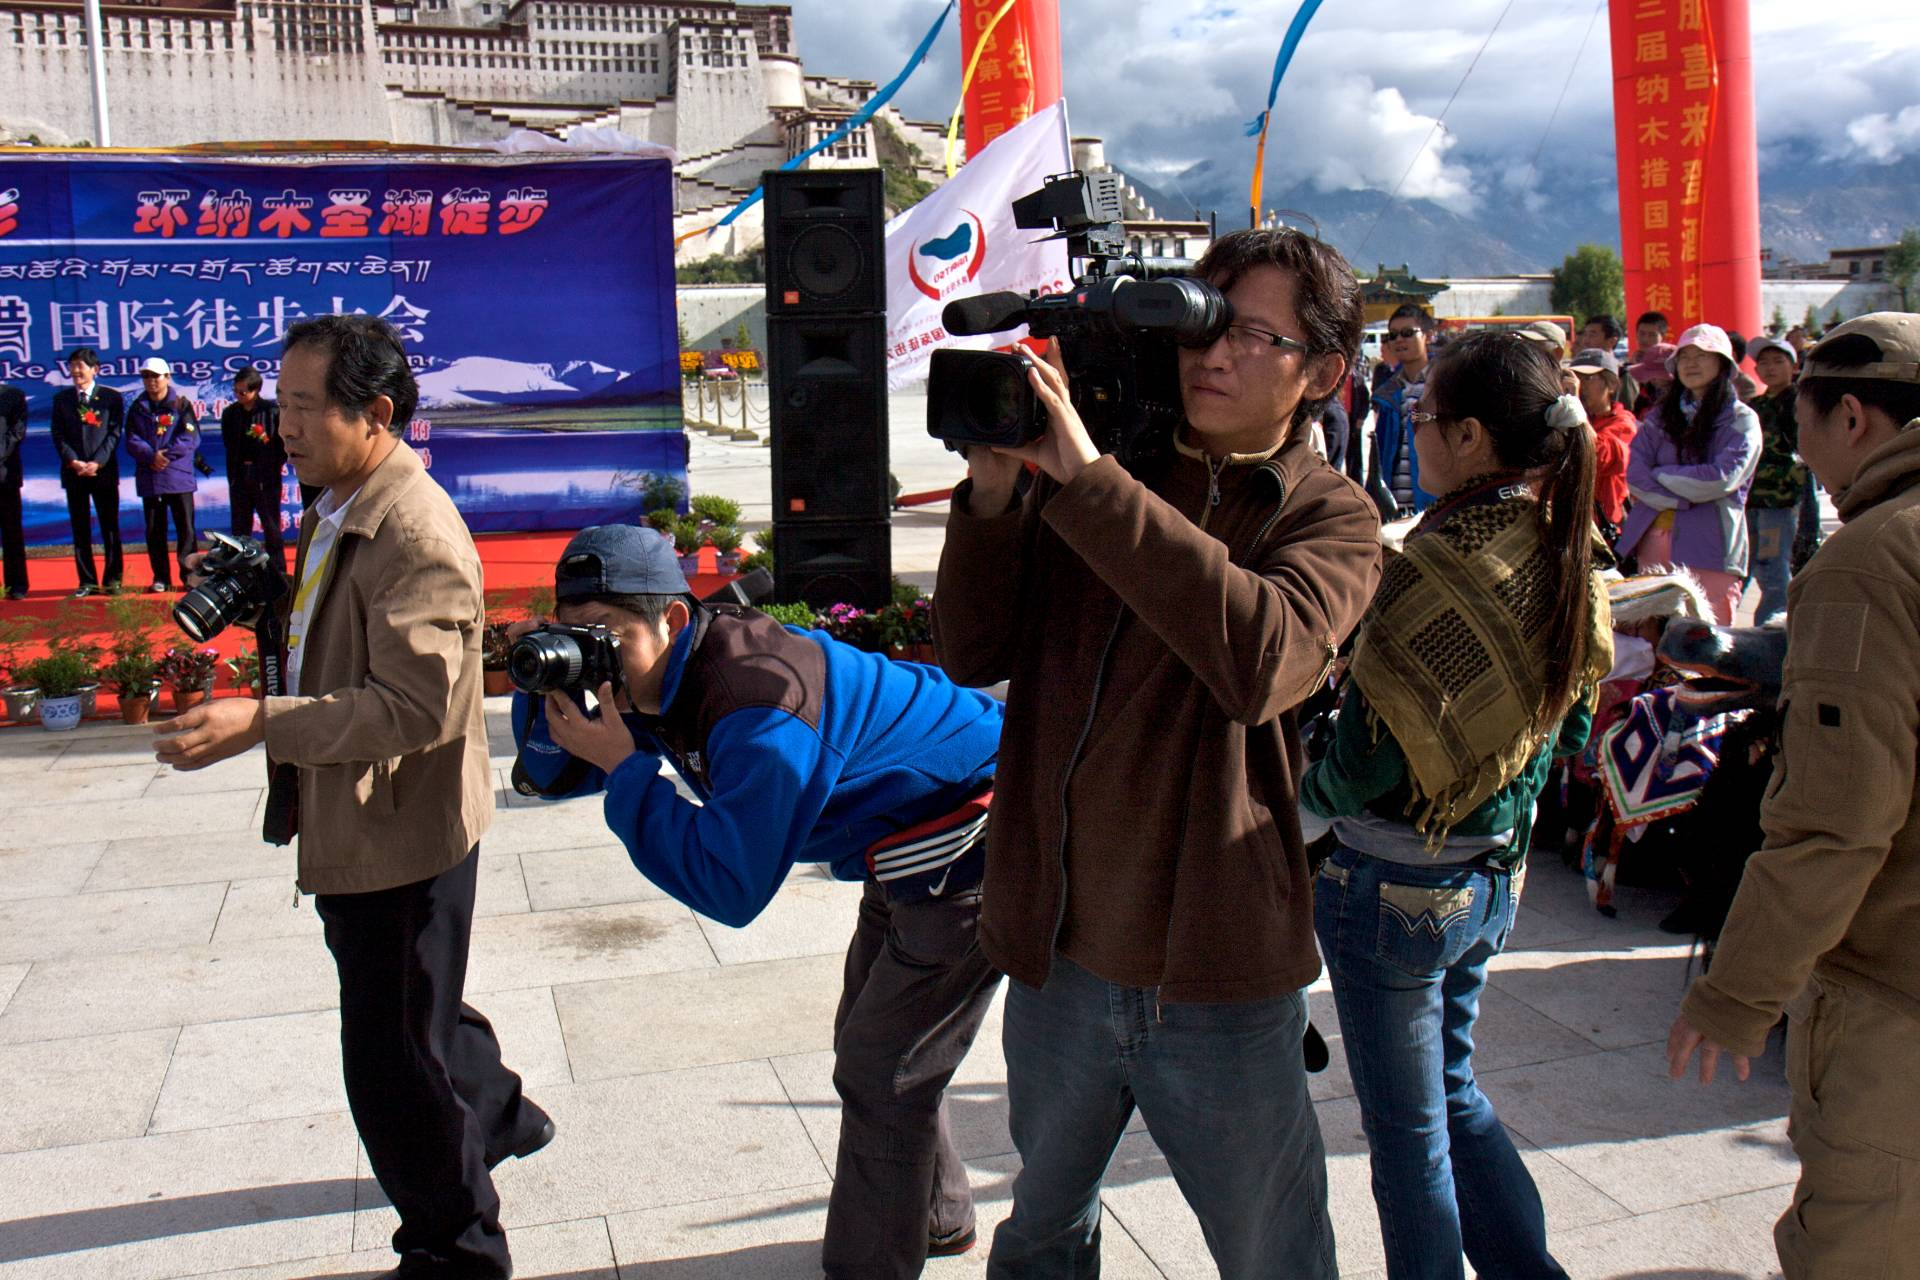 tibet: the end of time essay Matters relevant to the tibetan society in amdo in the writer's time2 however,   12 at the end of the essay it is stated that it is based on some writings in the.